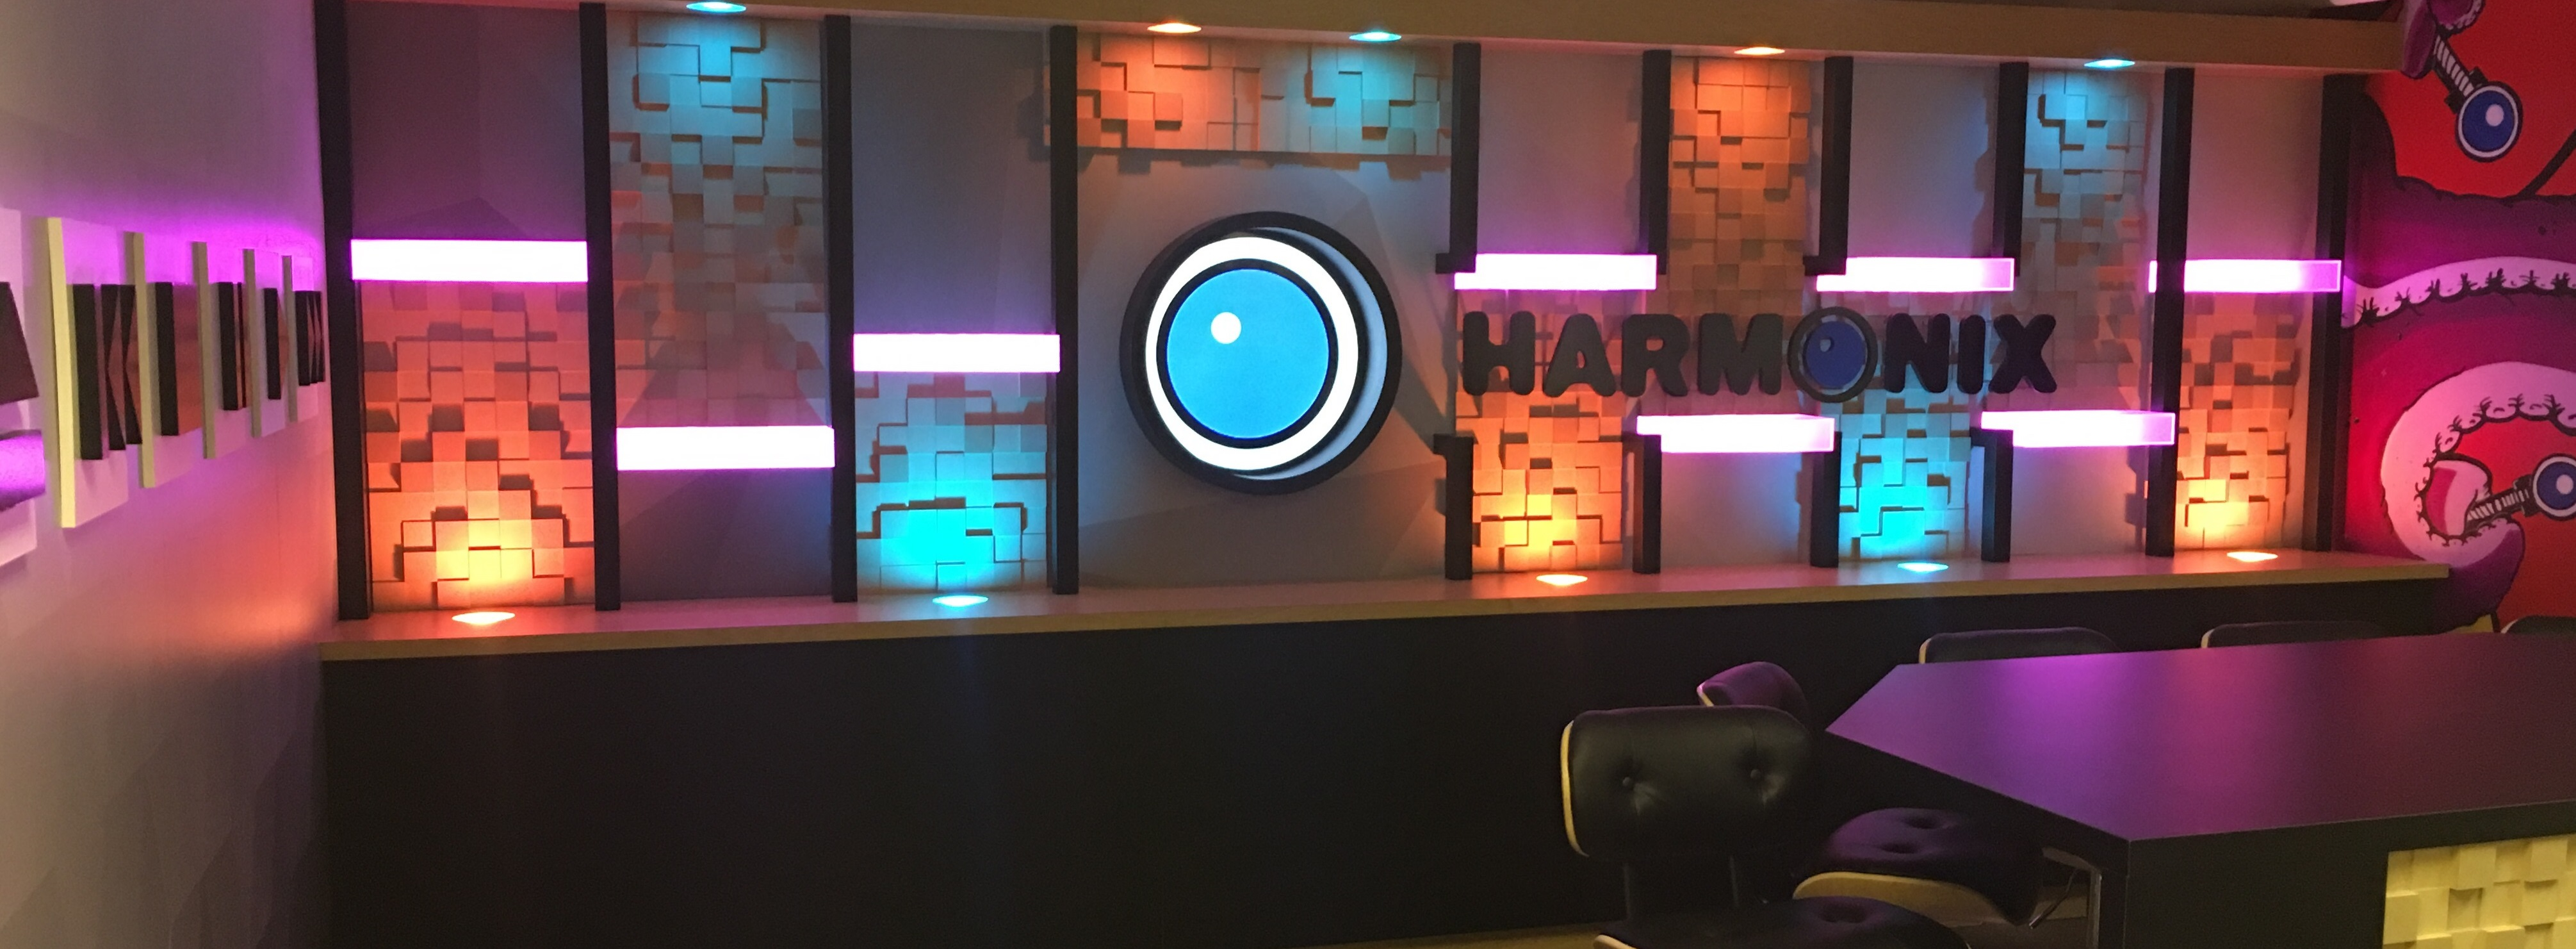 The new Harmonix Twitch studio!